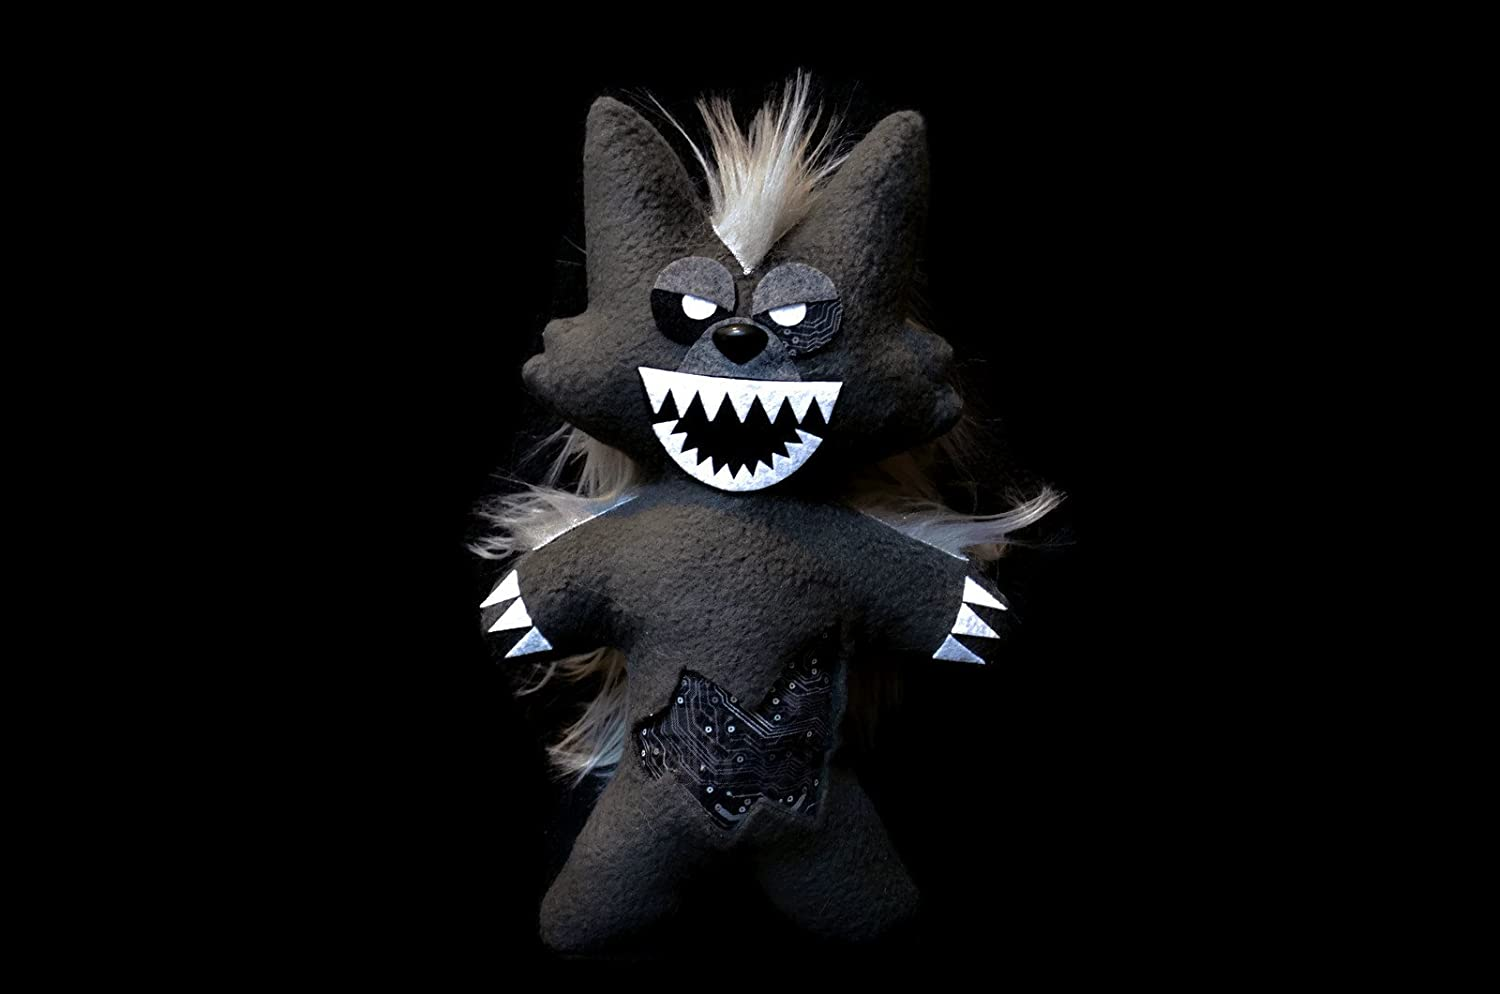 Fnaf ~Handmade Plush~Twisted Wolf/ Five Nights at Freddys 11